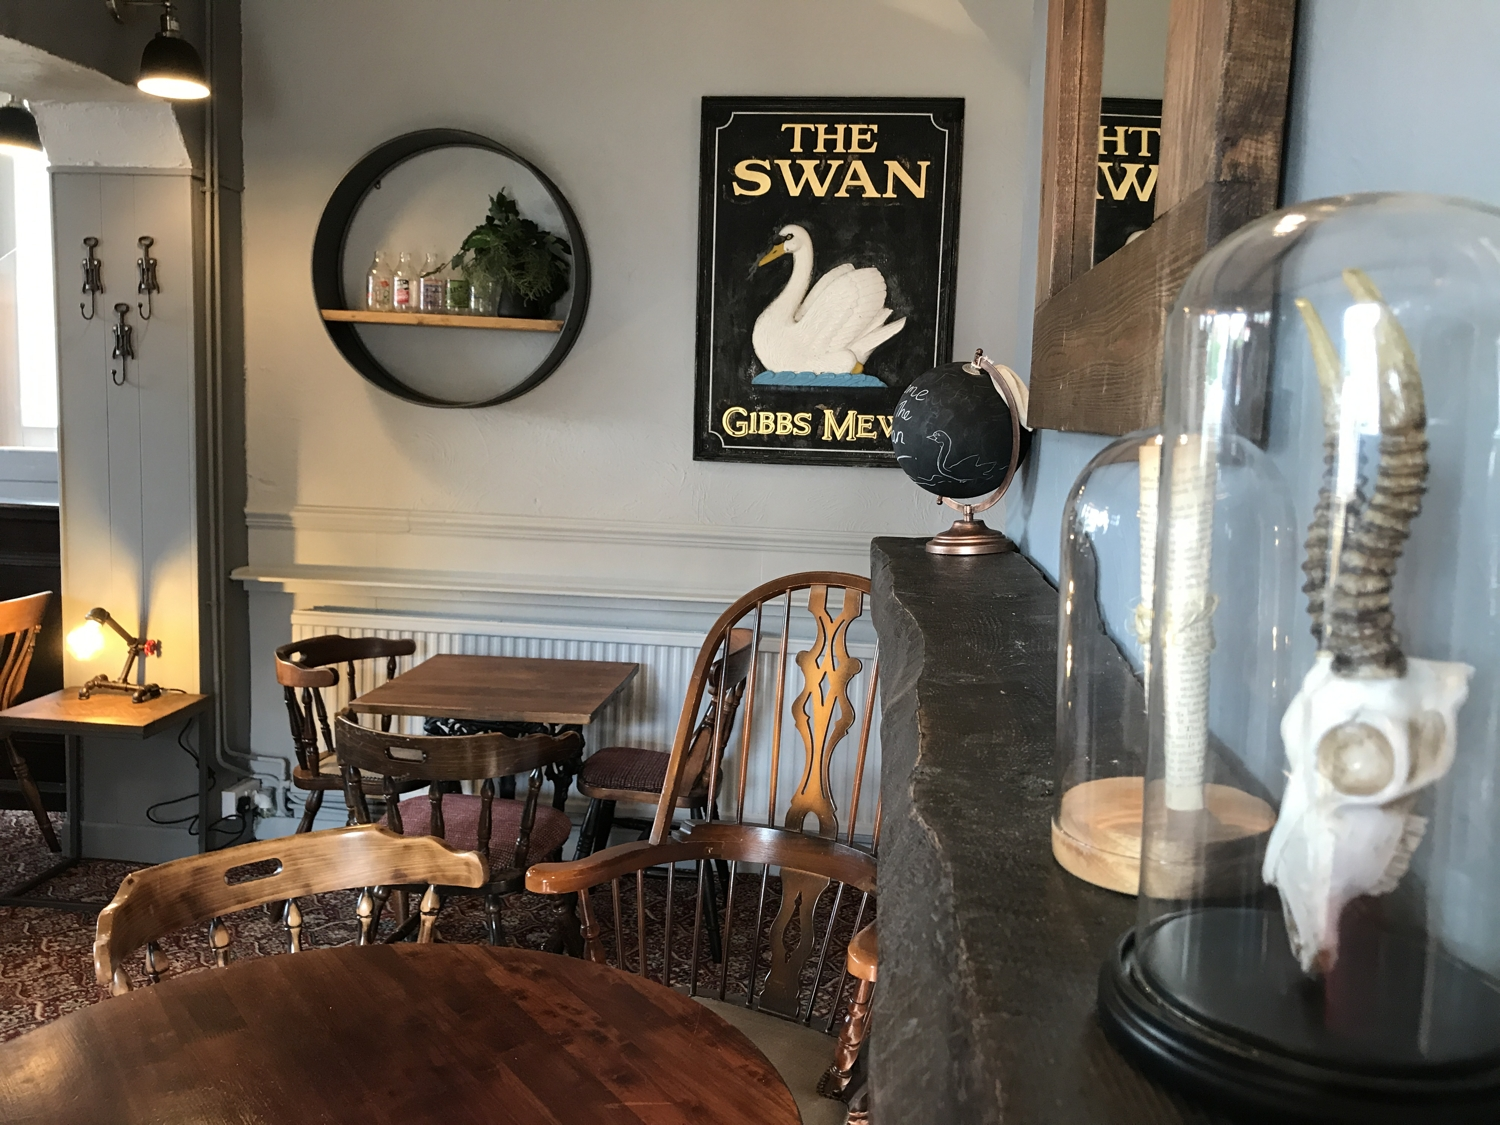 The Swan Picture.jpg